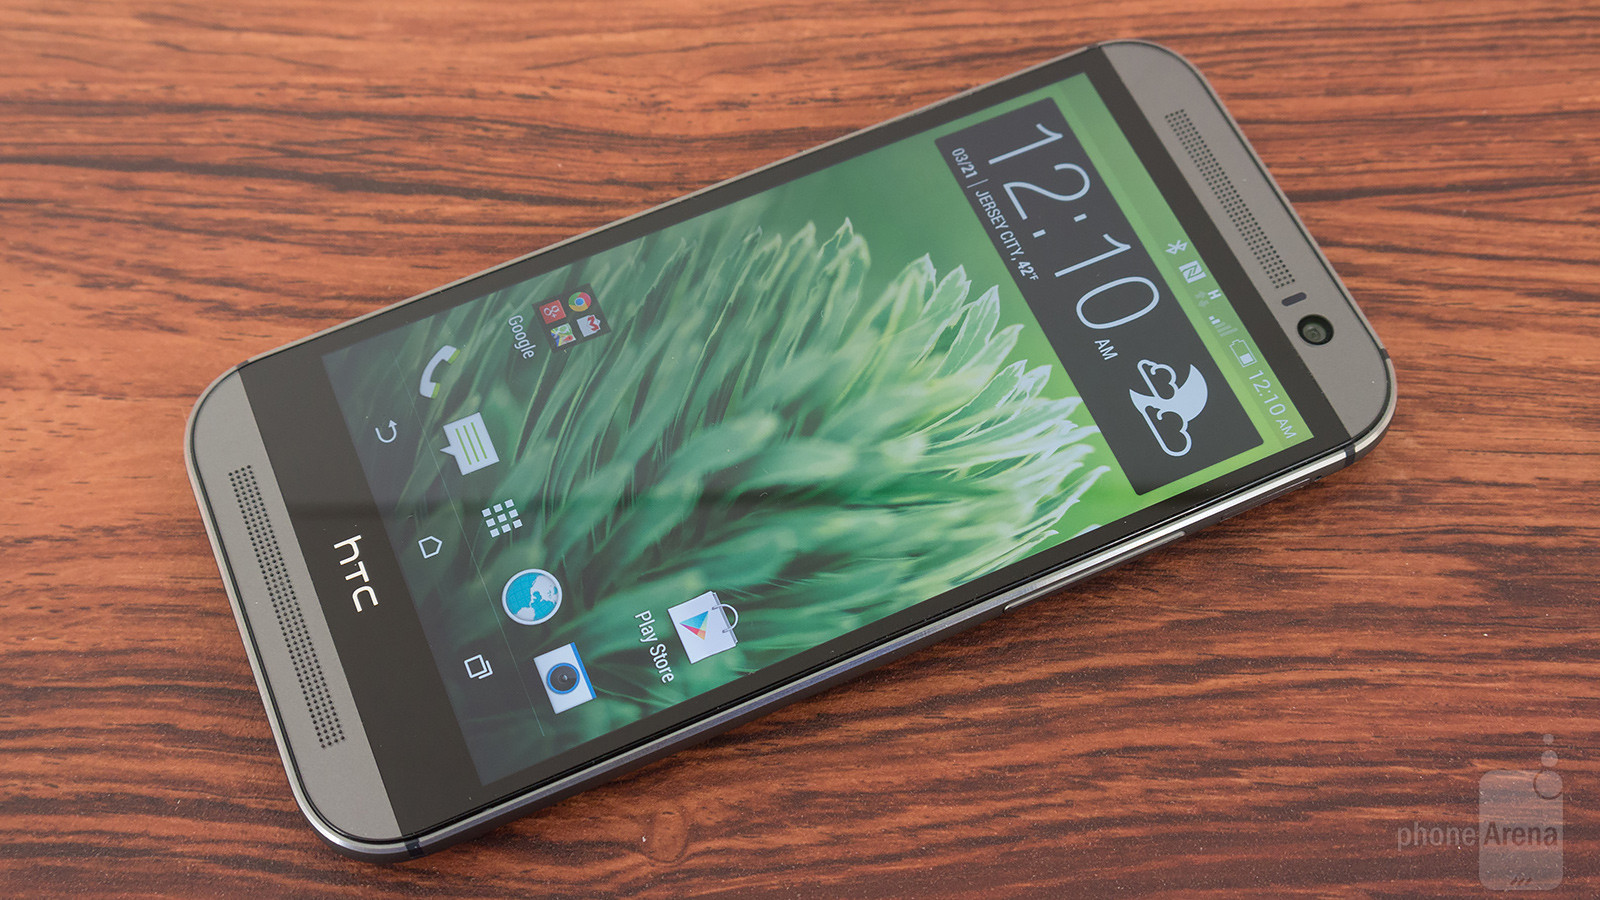 HTC One M8 DualSIM